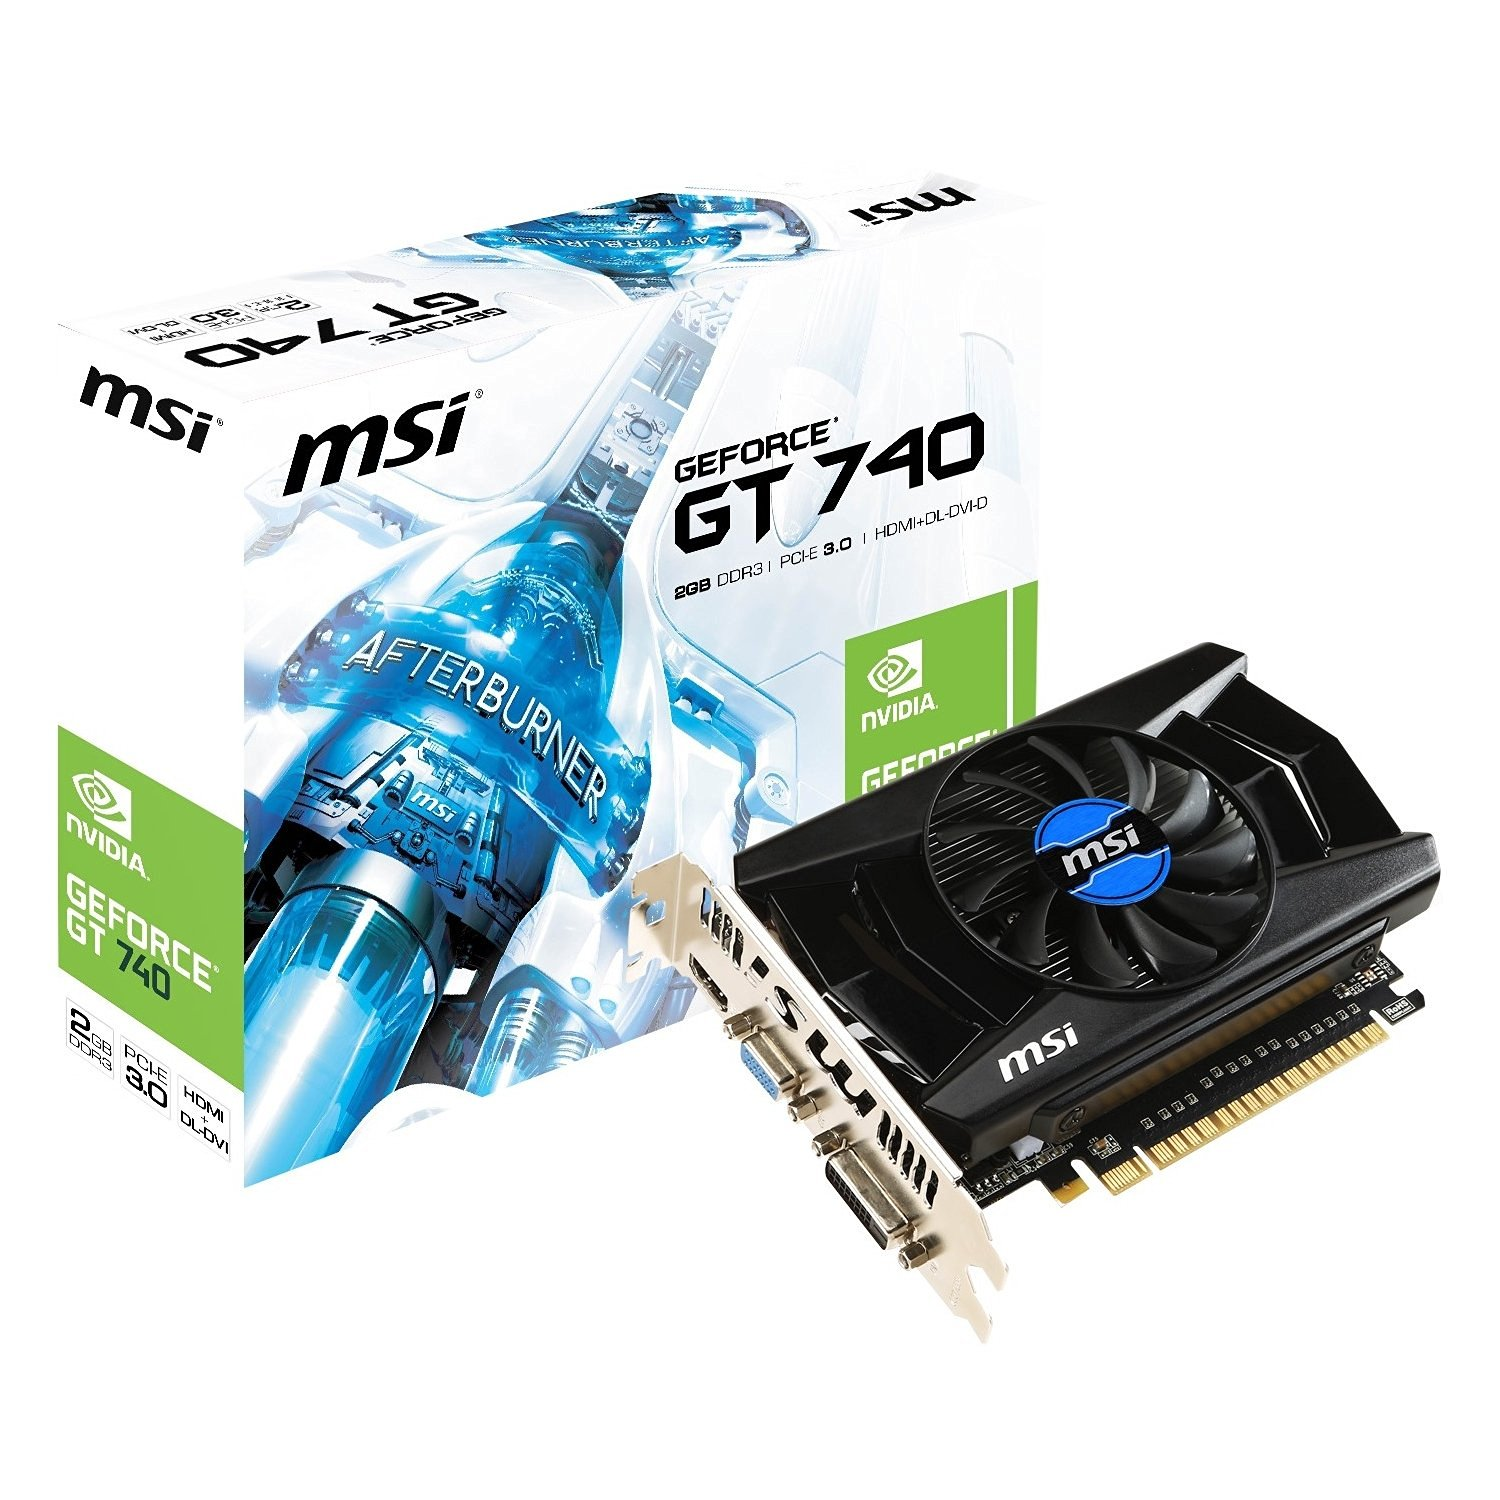 MSI N740-2GD3 - GeForce GT 740 2GB DDR3 PCI Express x16 3.0 Dual-link DVI-D/HDMI/D-Sub Video Card